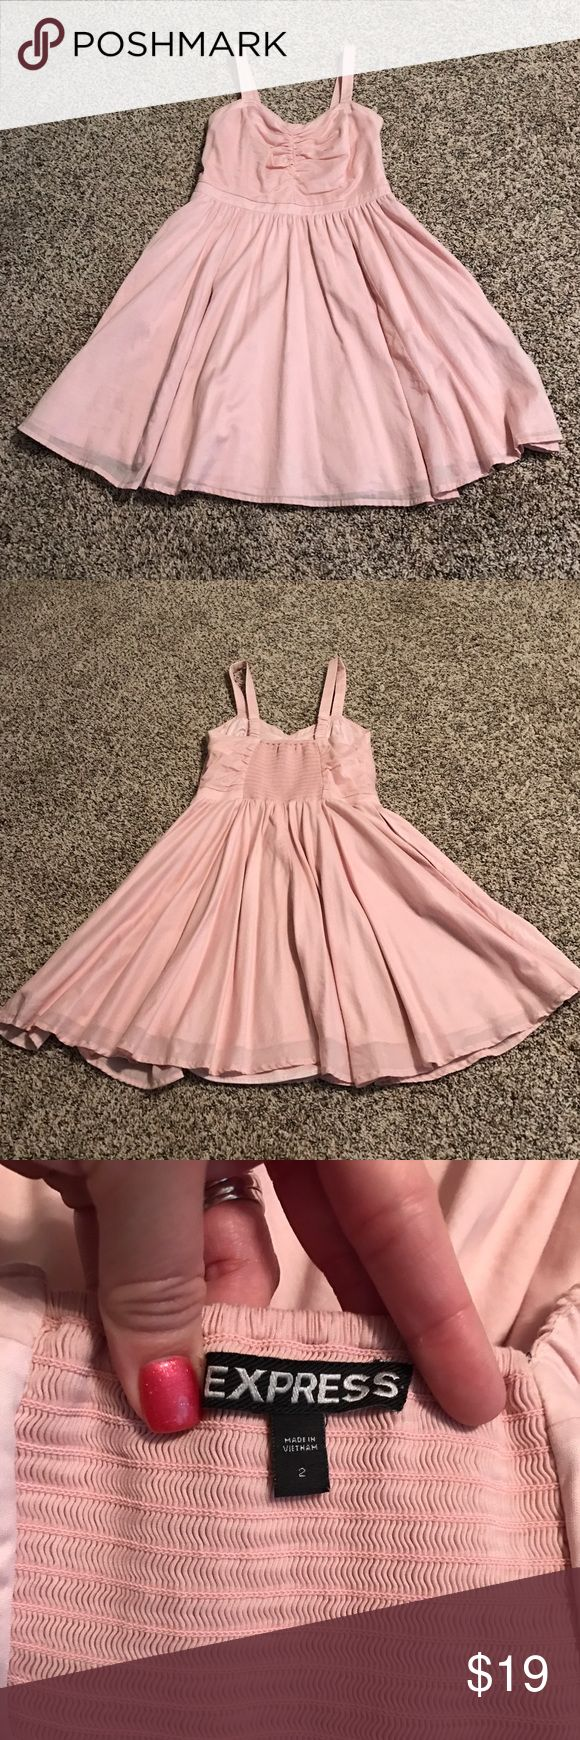 Express pink mini dress - only worn once! Like new. Mini dress. Very flattering and comfy. Express Dresses Mini